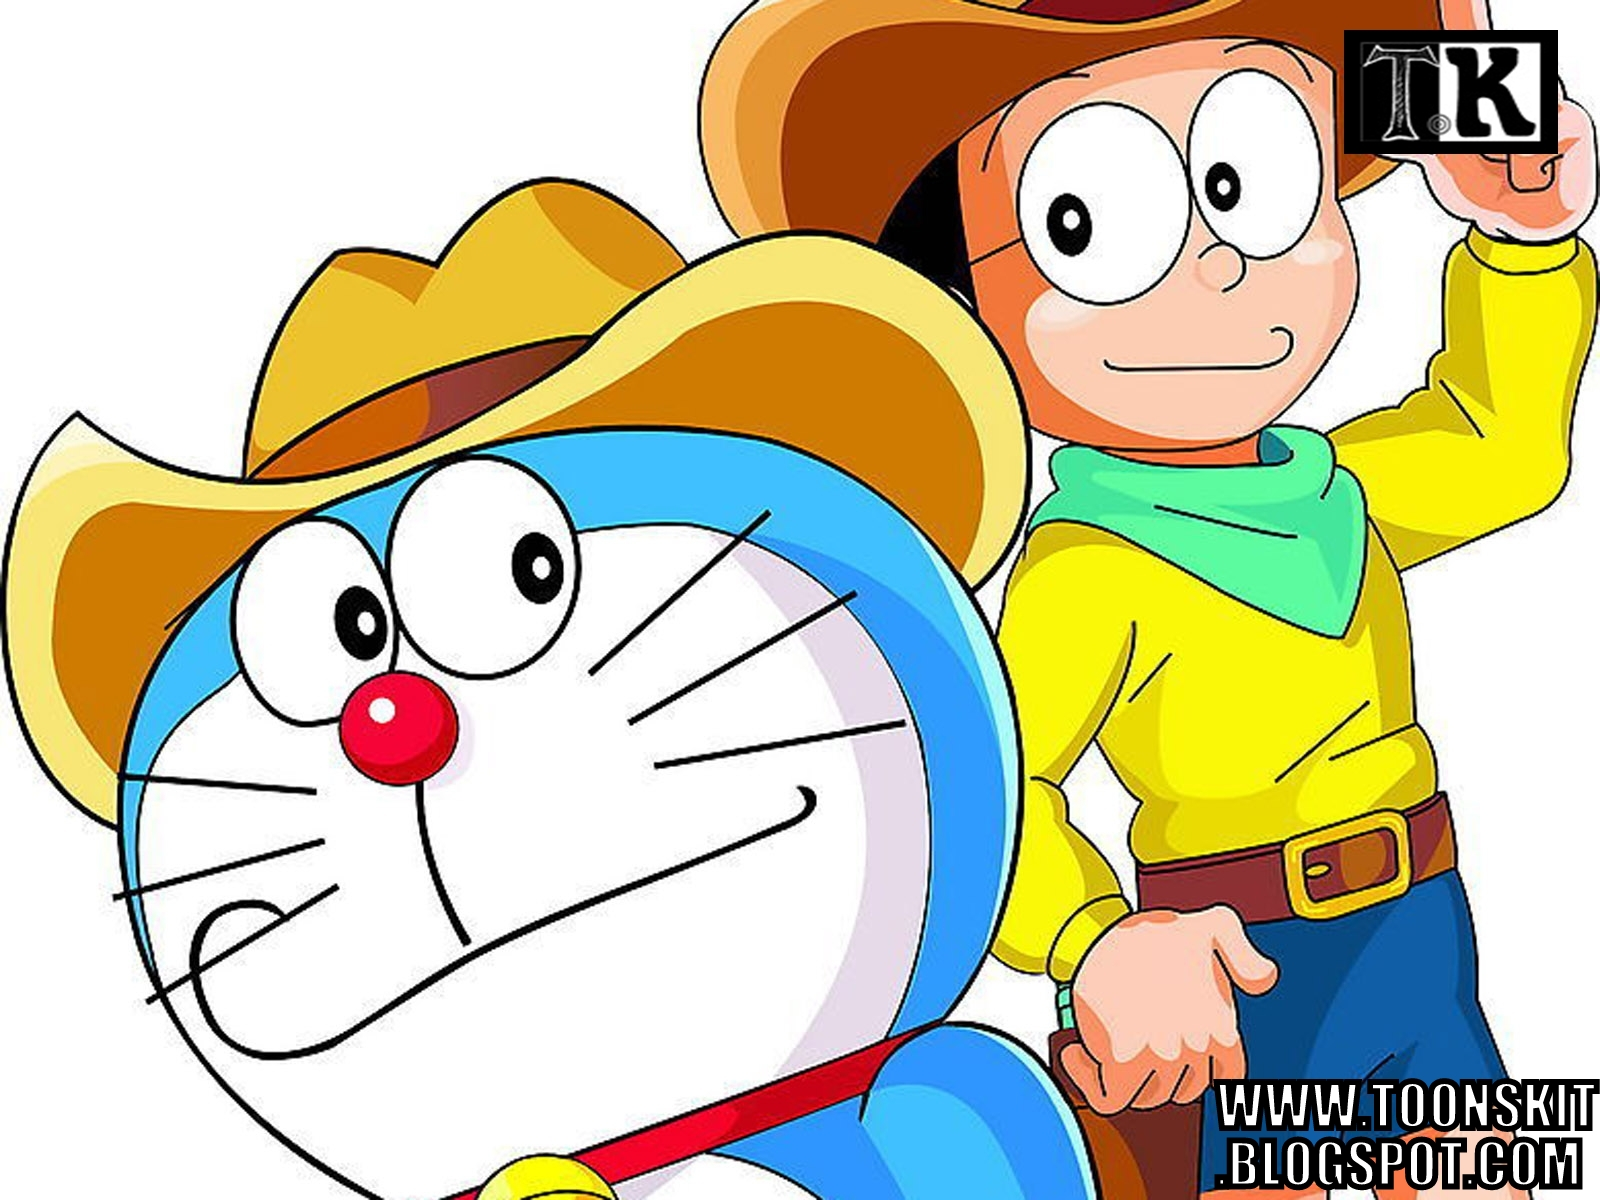 Toons kit india doraemon episodes in hindi for Domon in hindi